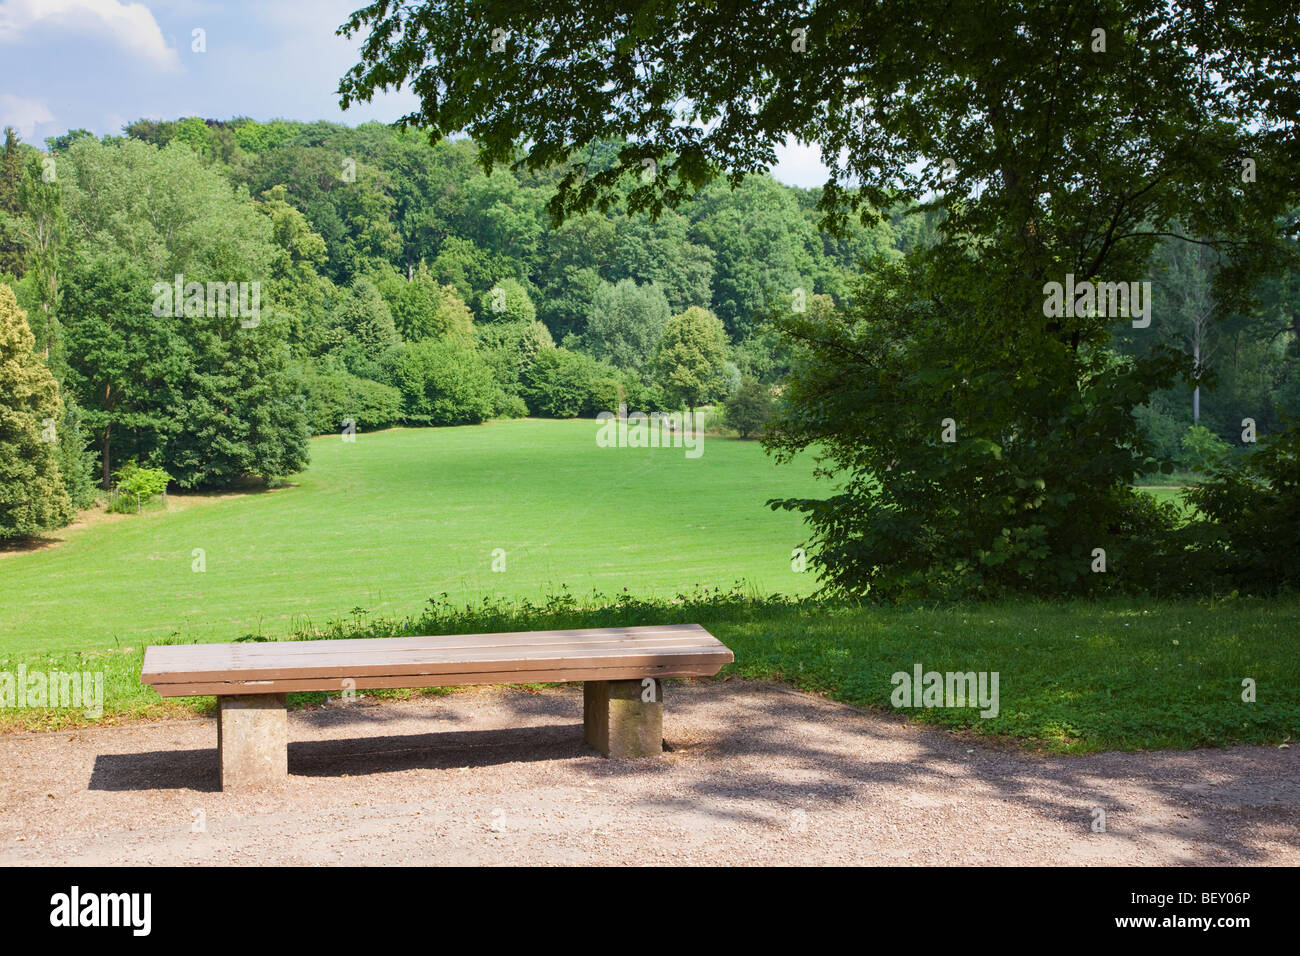 Wooden park bench overlooking a field and forest in an inner city park - Stock Image